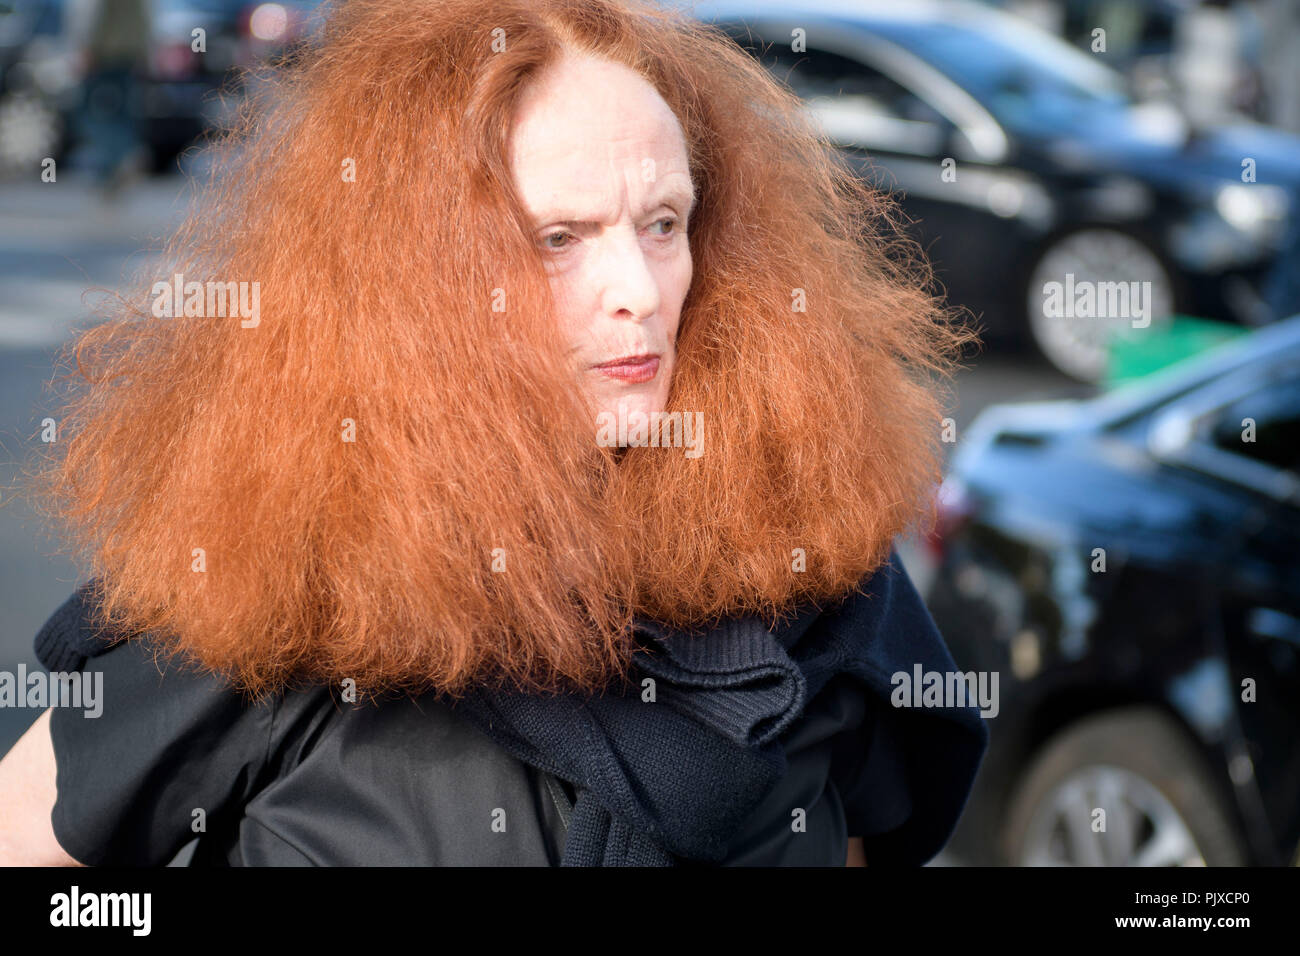 Former model and the creative director at large of American Vogue magazine Grace Coddington arrives on Day Six for Paris Fashion Week Spring/Summer 2017 Collection shows on October 02, 2016, in Paris, France. © Hugh Peterswald/Alamy Live News - Stock Image